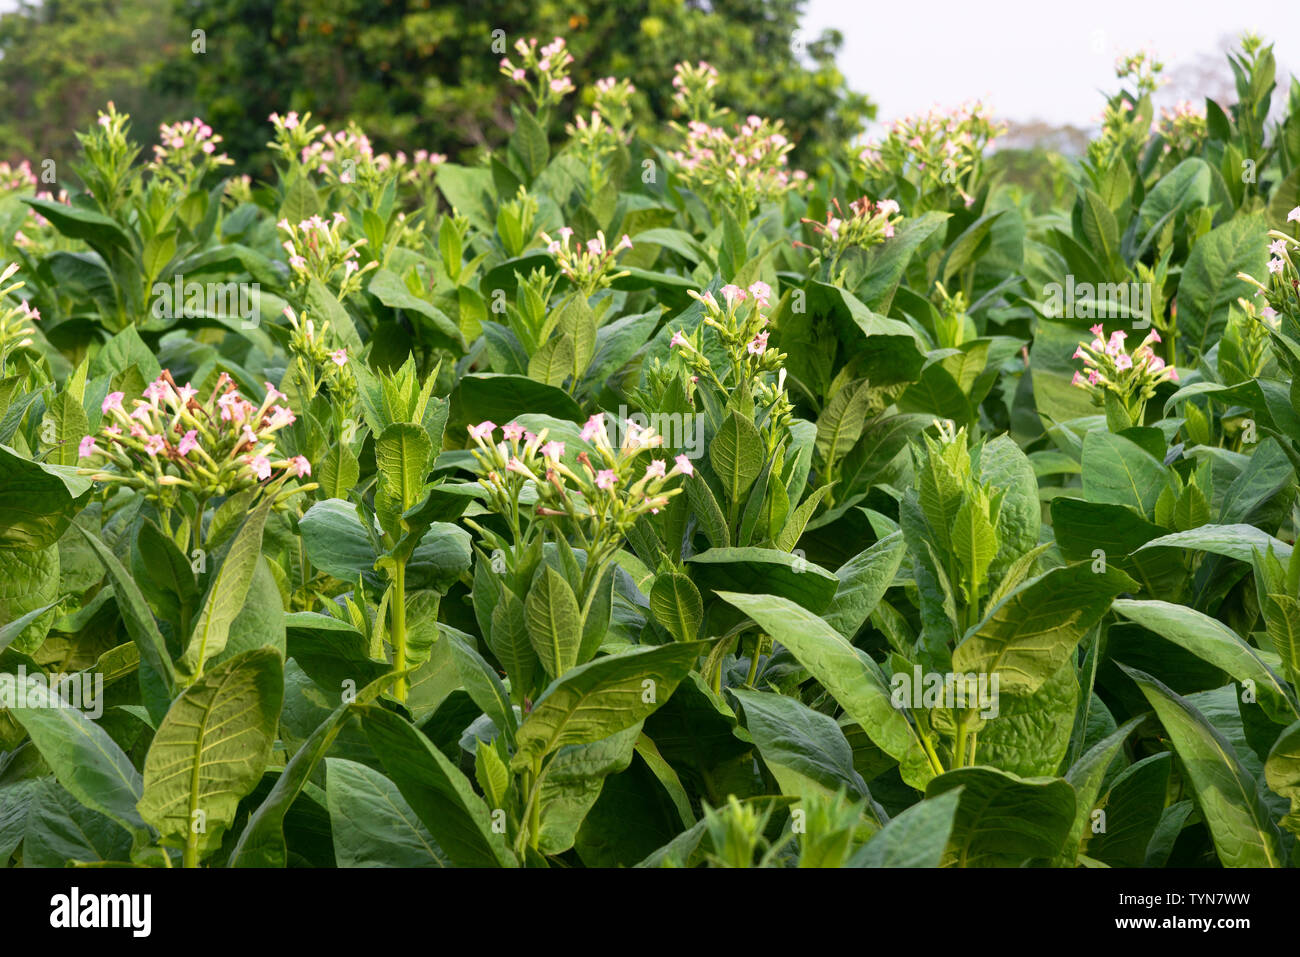 Field of tobacco plants growing in the countryside surrounding the rural village of San Juan y Martinez, Pinar del Rio Province, Cuba - Stock Image